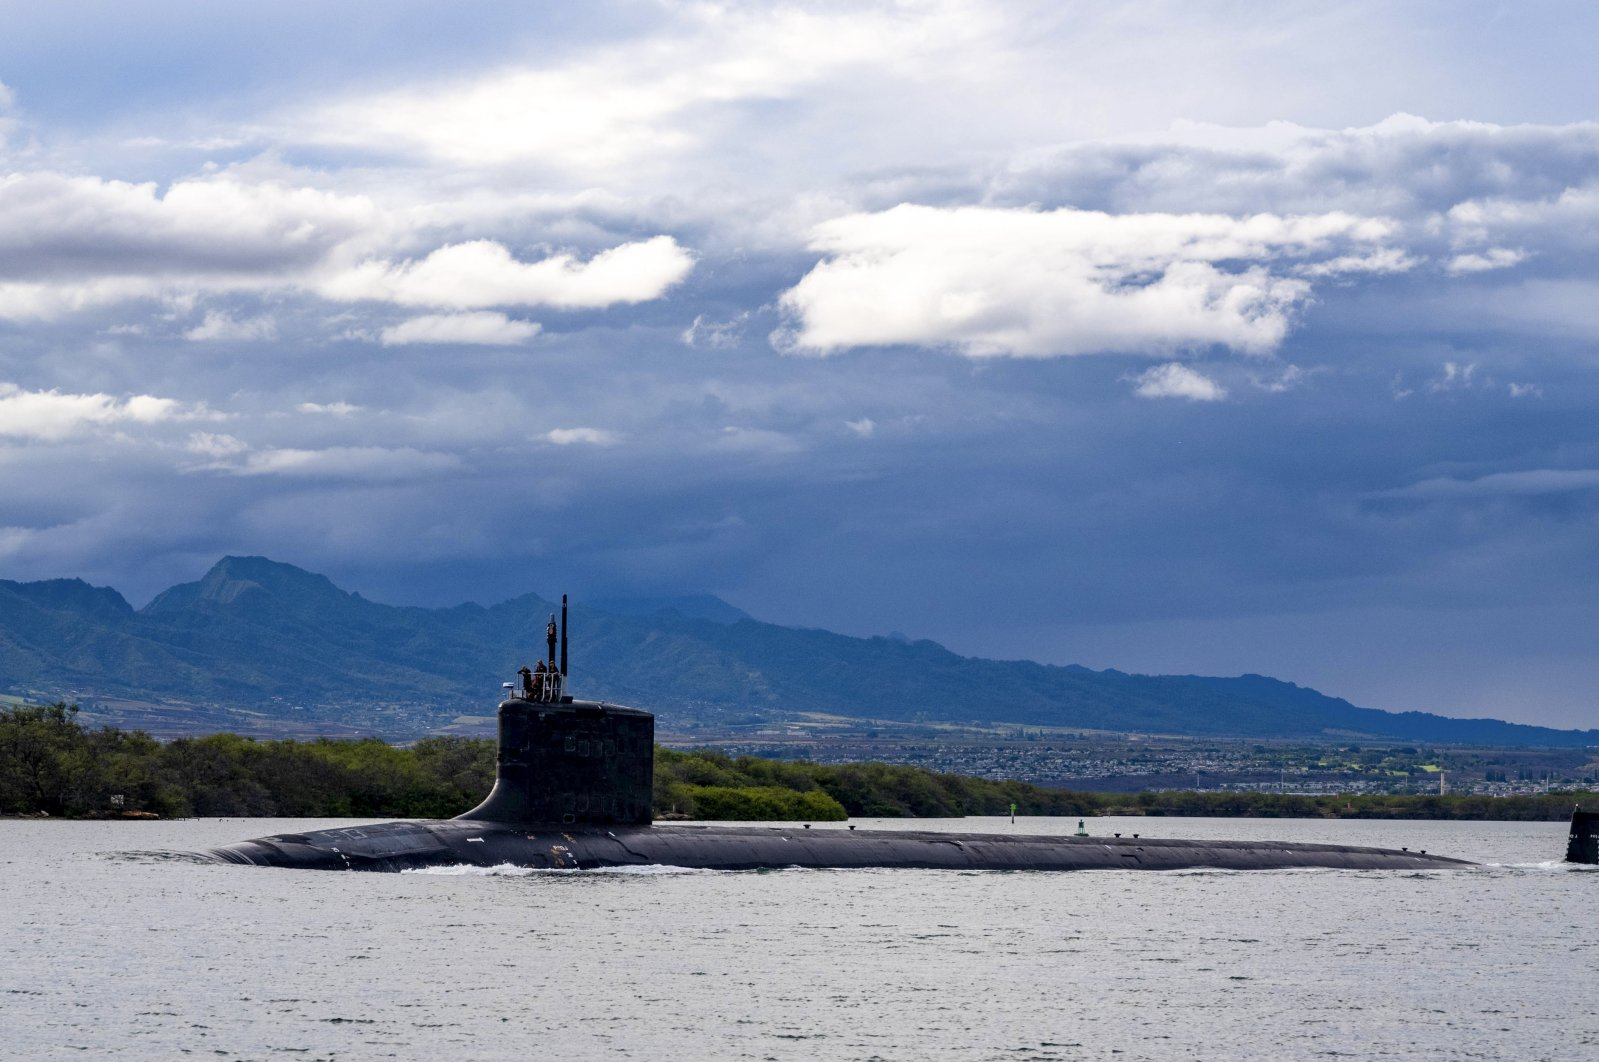 In this photo provided by U.S. Navy, the Virginia-class fast-attack submarine USS Missouri (SSN 780) departs Joint Base Pearl Harbor-Hickam for a scheduled deployment in the 7th Fleet area of responsibility, Sept. 1, 2021. (AP Photo)